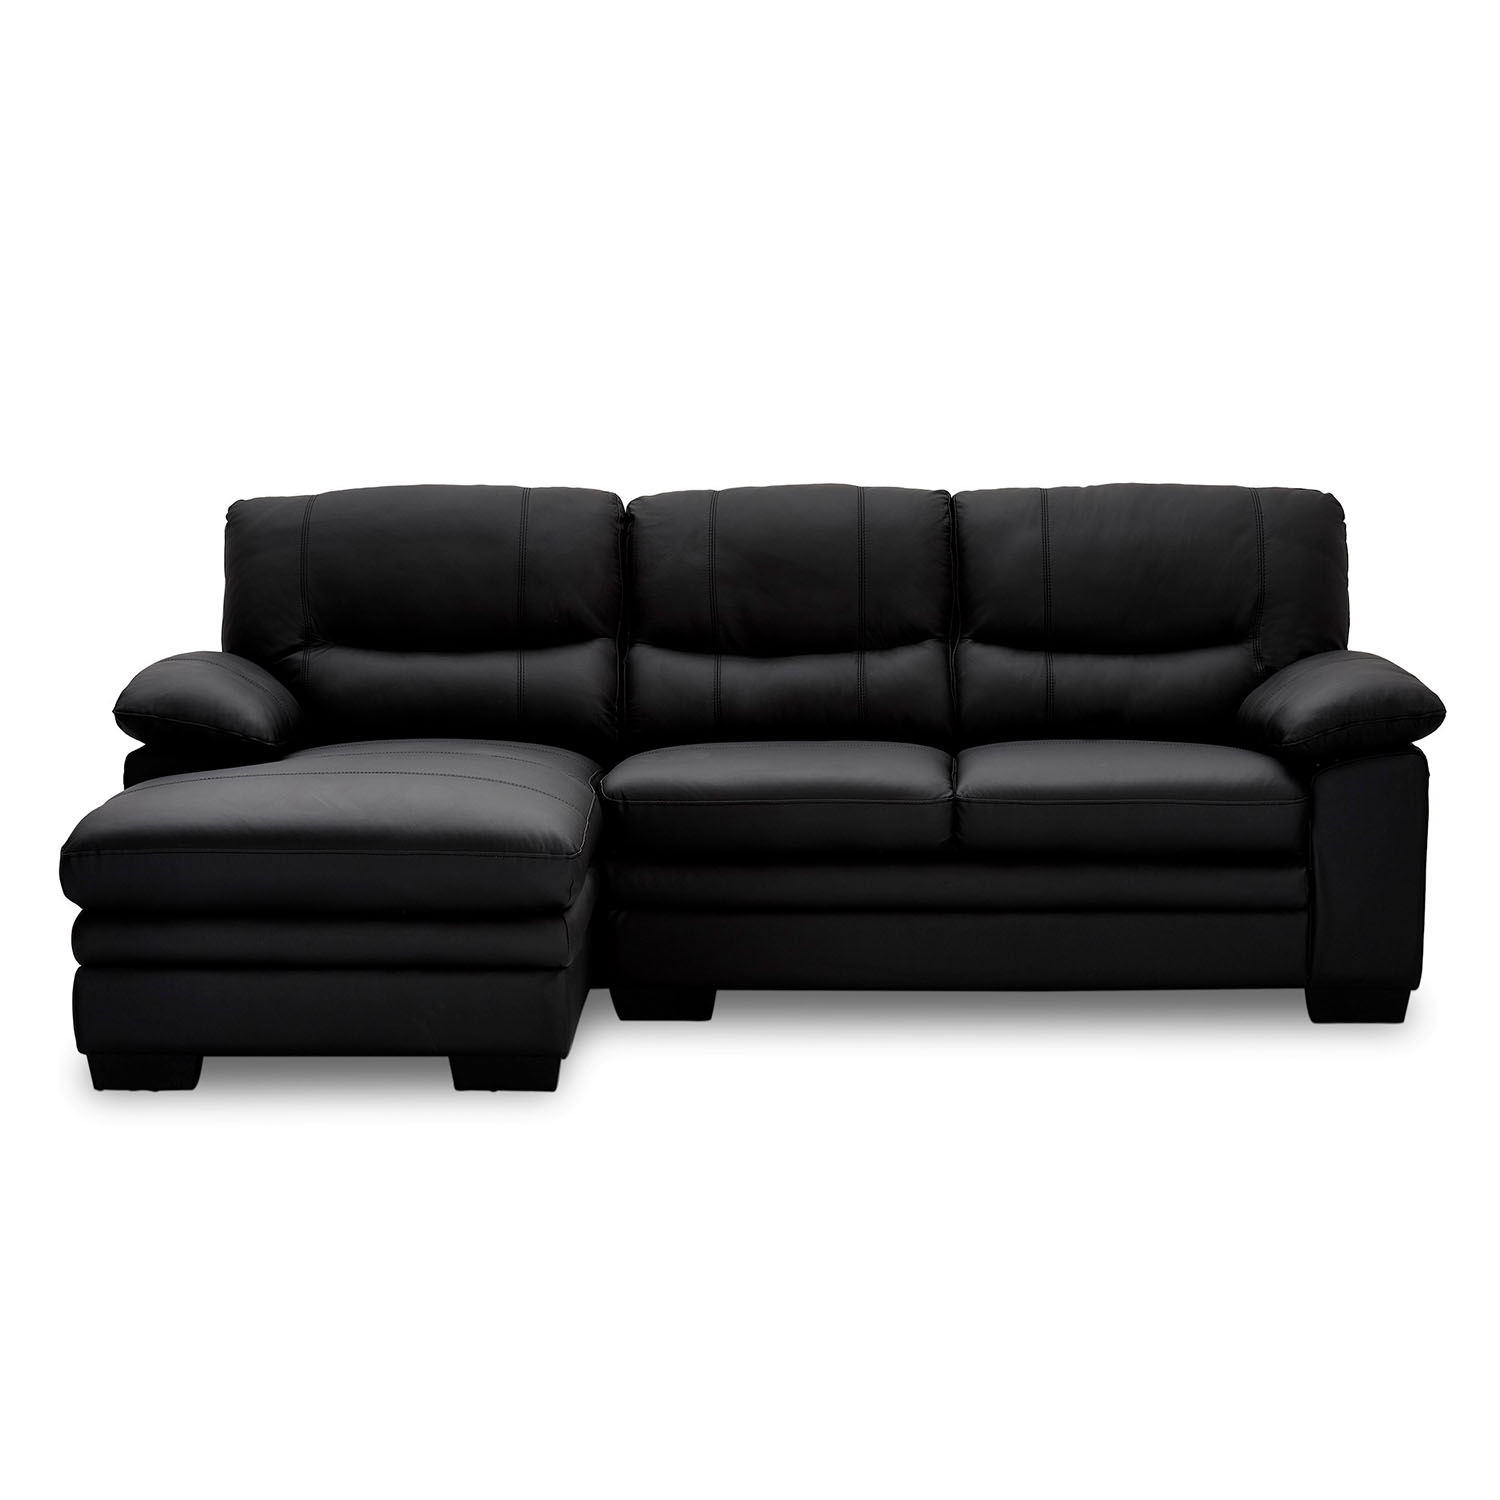 Moby sofa m. chaiselong - sort læder, venstrevendt